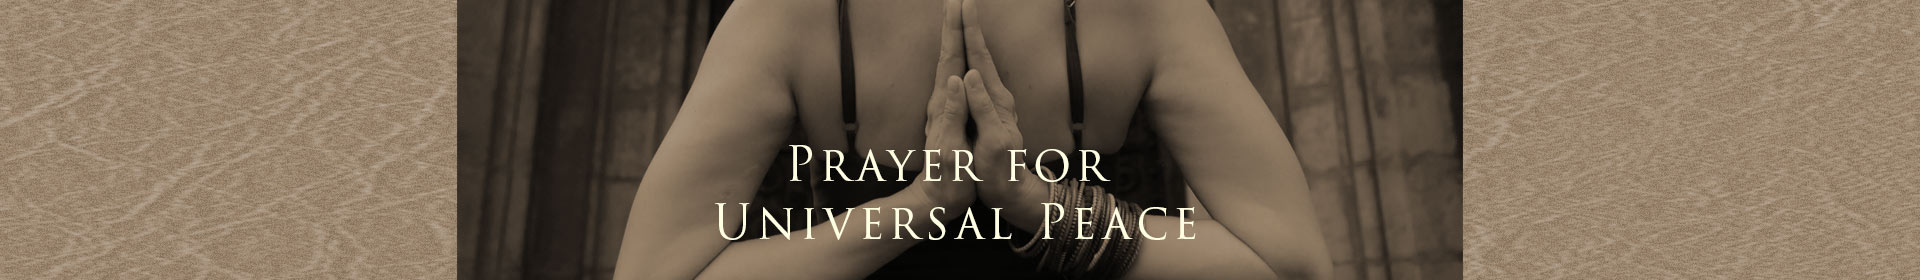 Prayer for Universal Peace